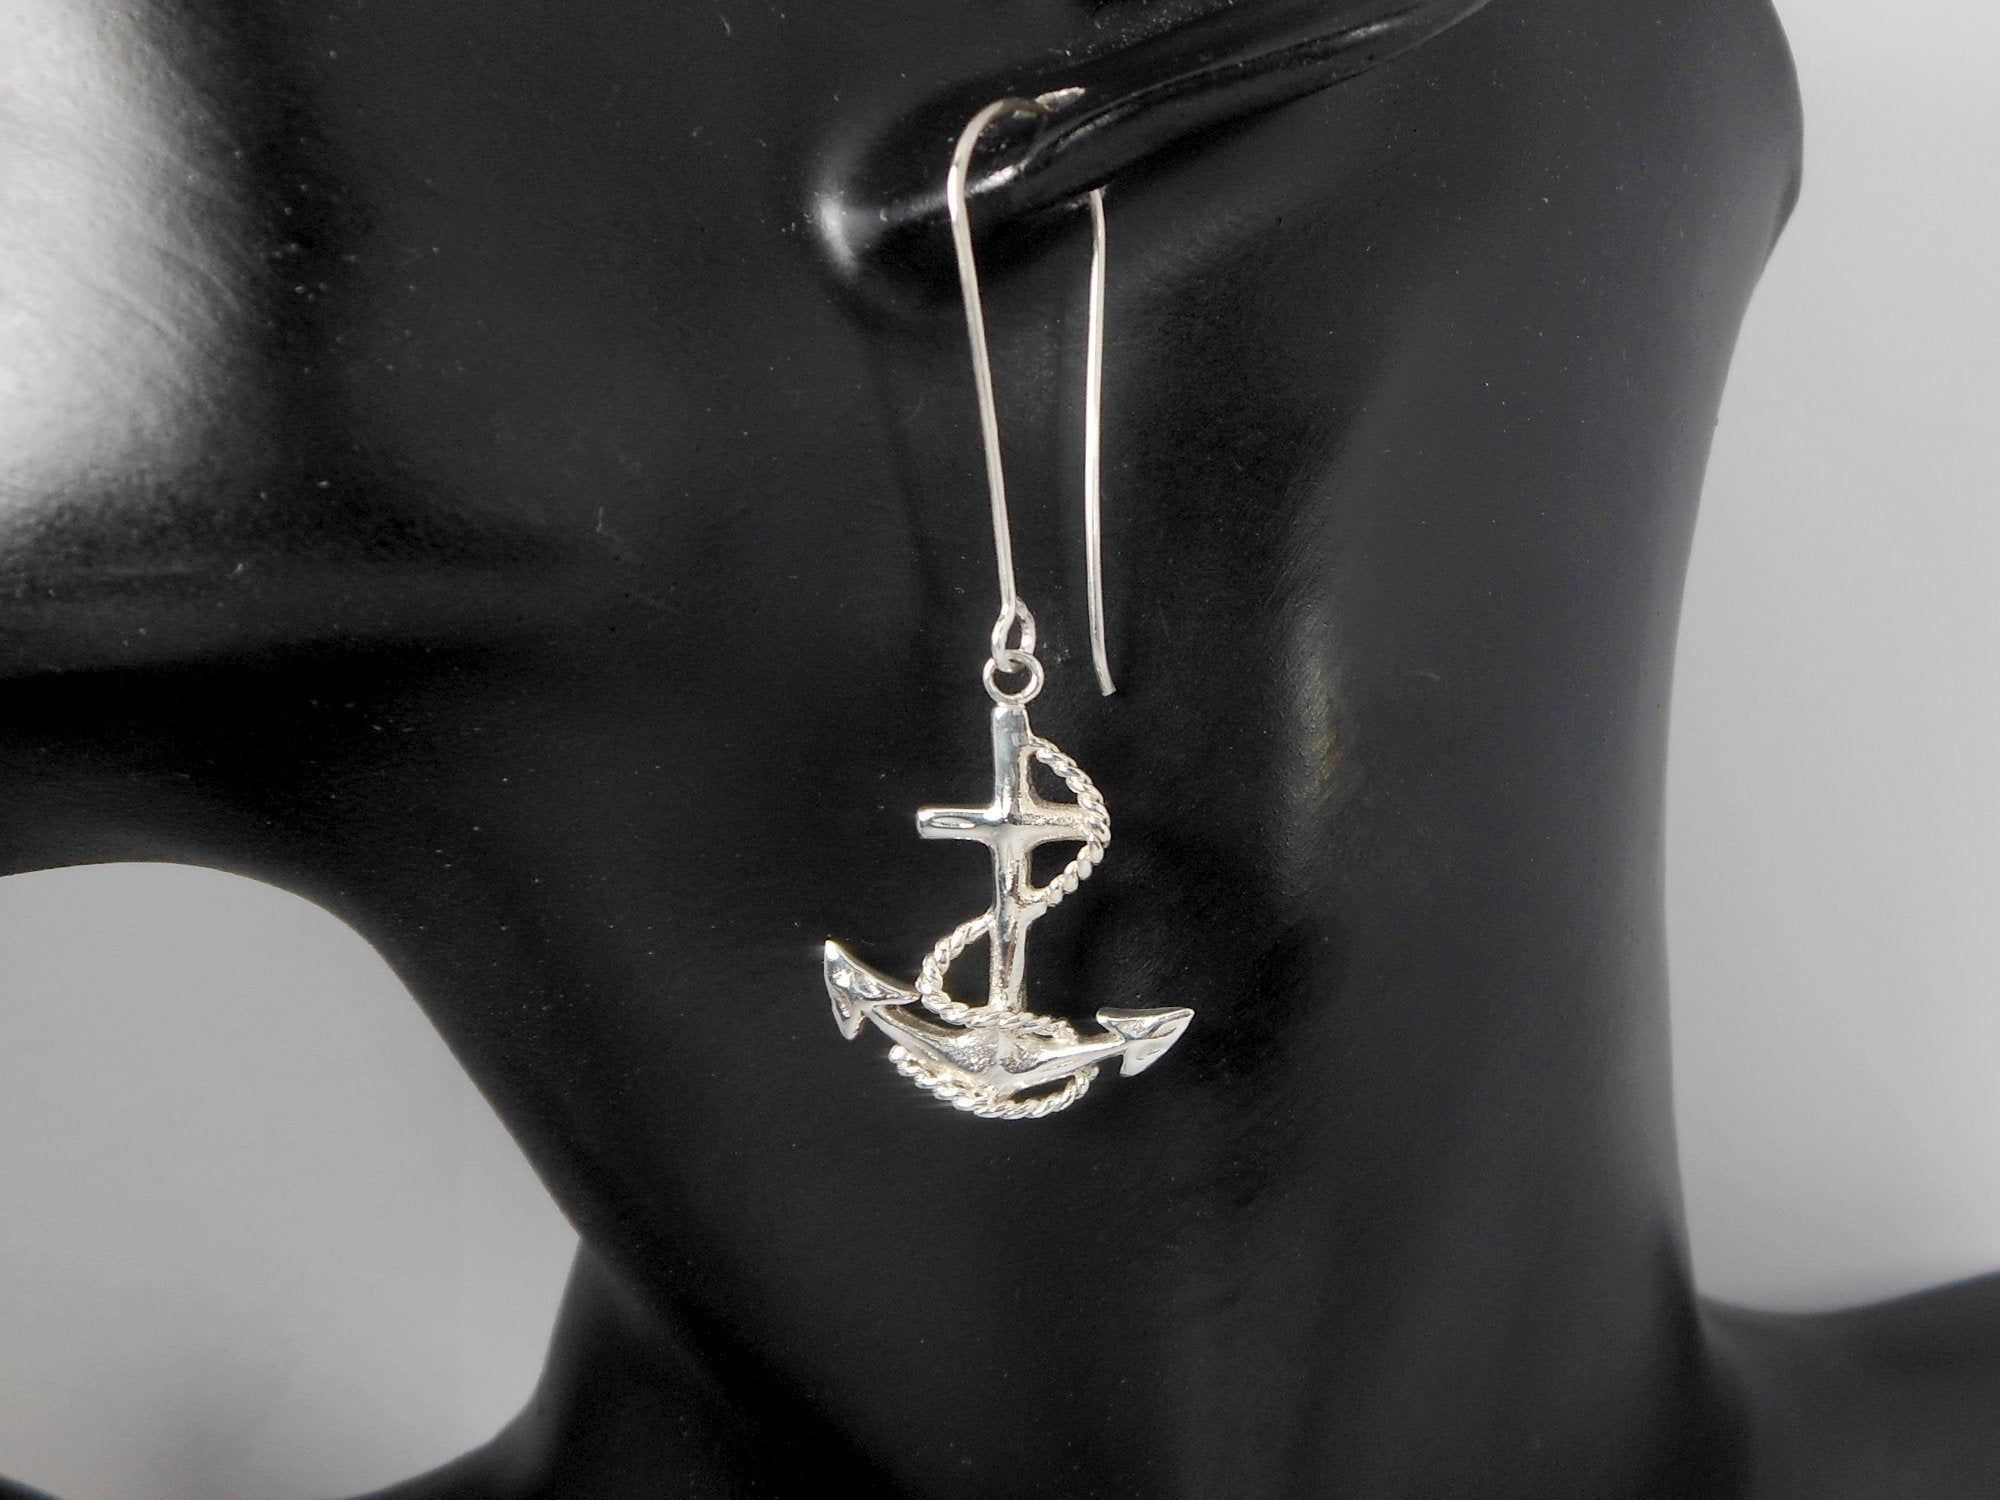 Silver Nautical Earrings Silver Anchor Earrings 925 Sterling Silver Jewelry Long Dangle Nautical Jewelry Holiday Gifts for Her  E701anchor